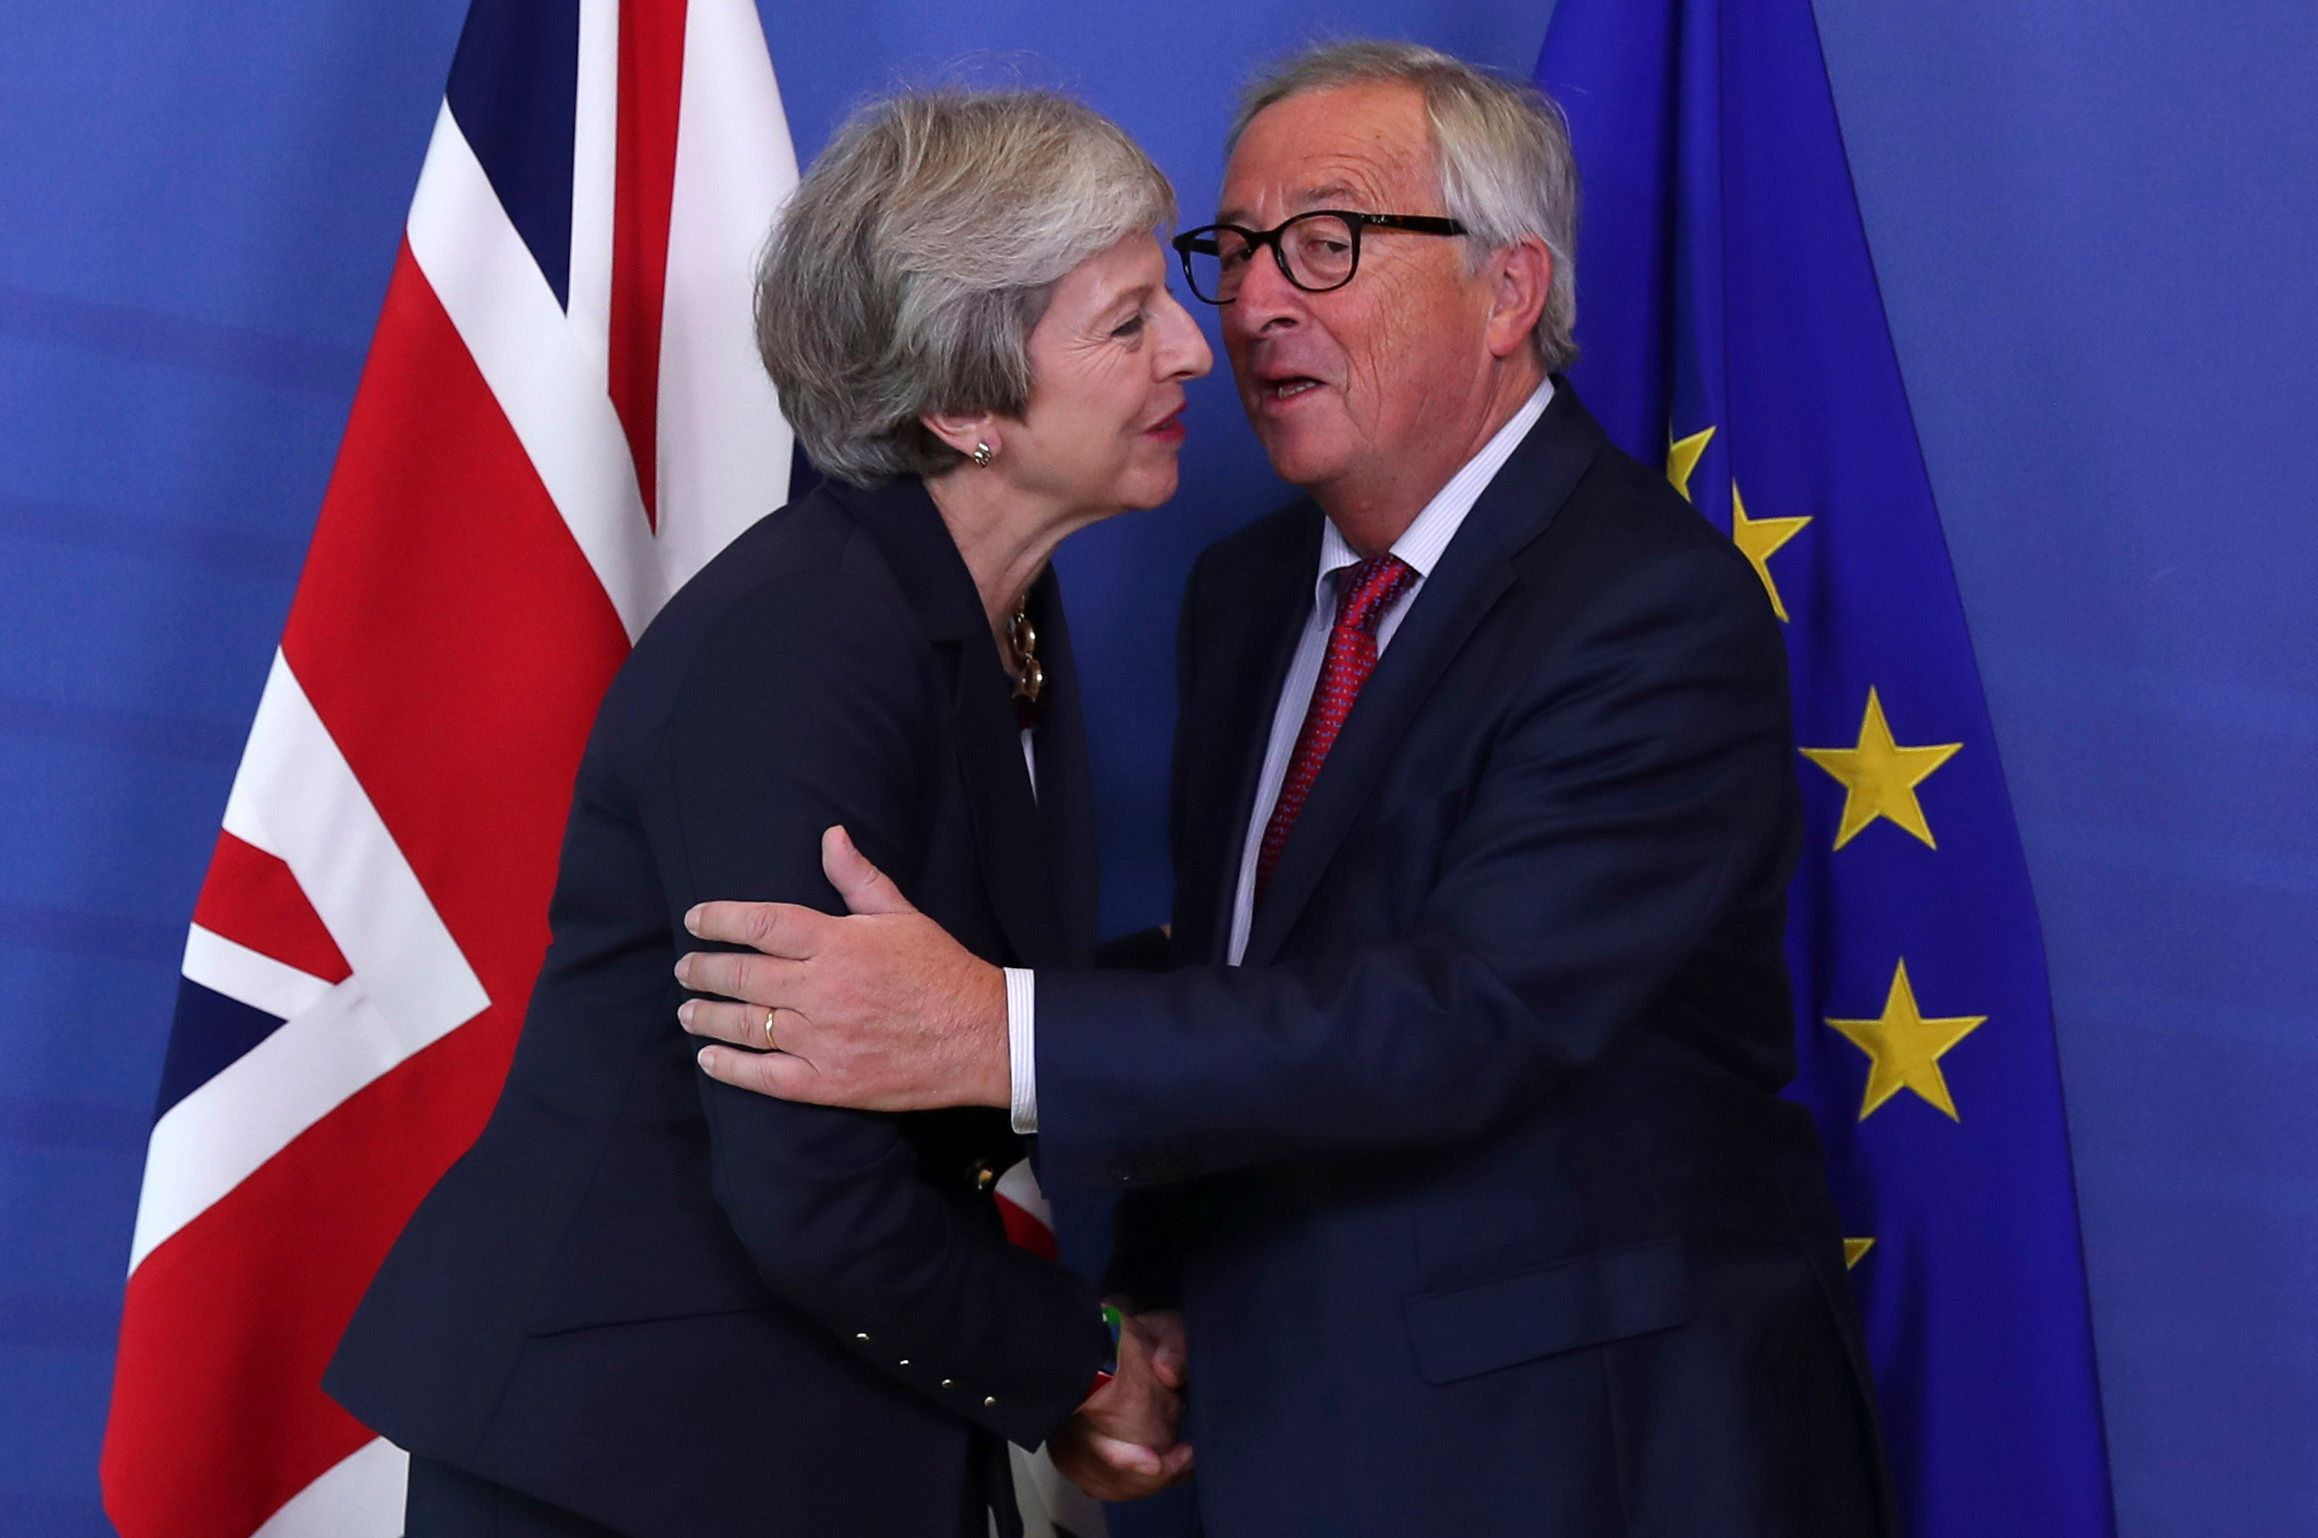 European Union  shelves plans for Brexit divorce deal summit citing lack of progress